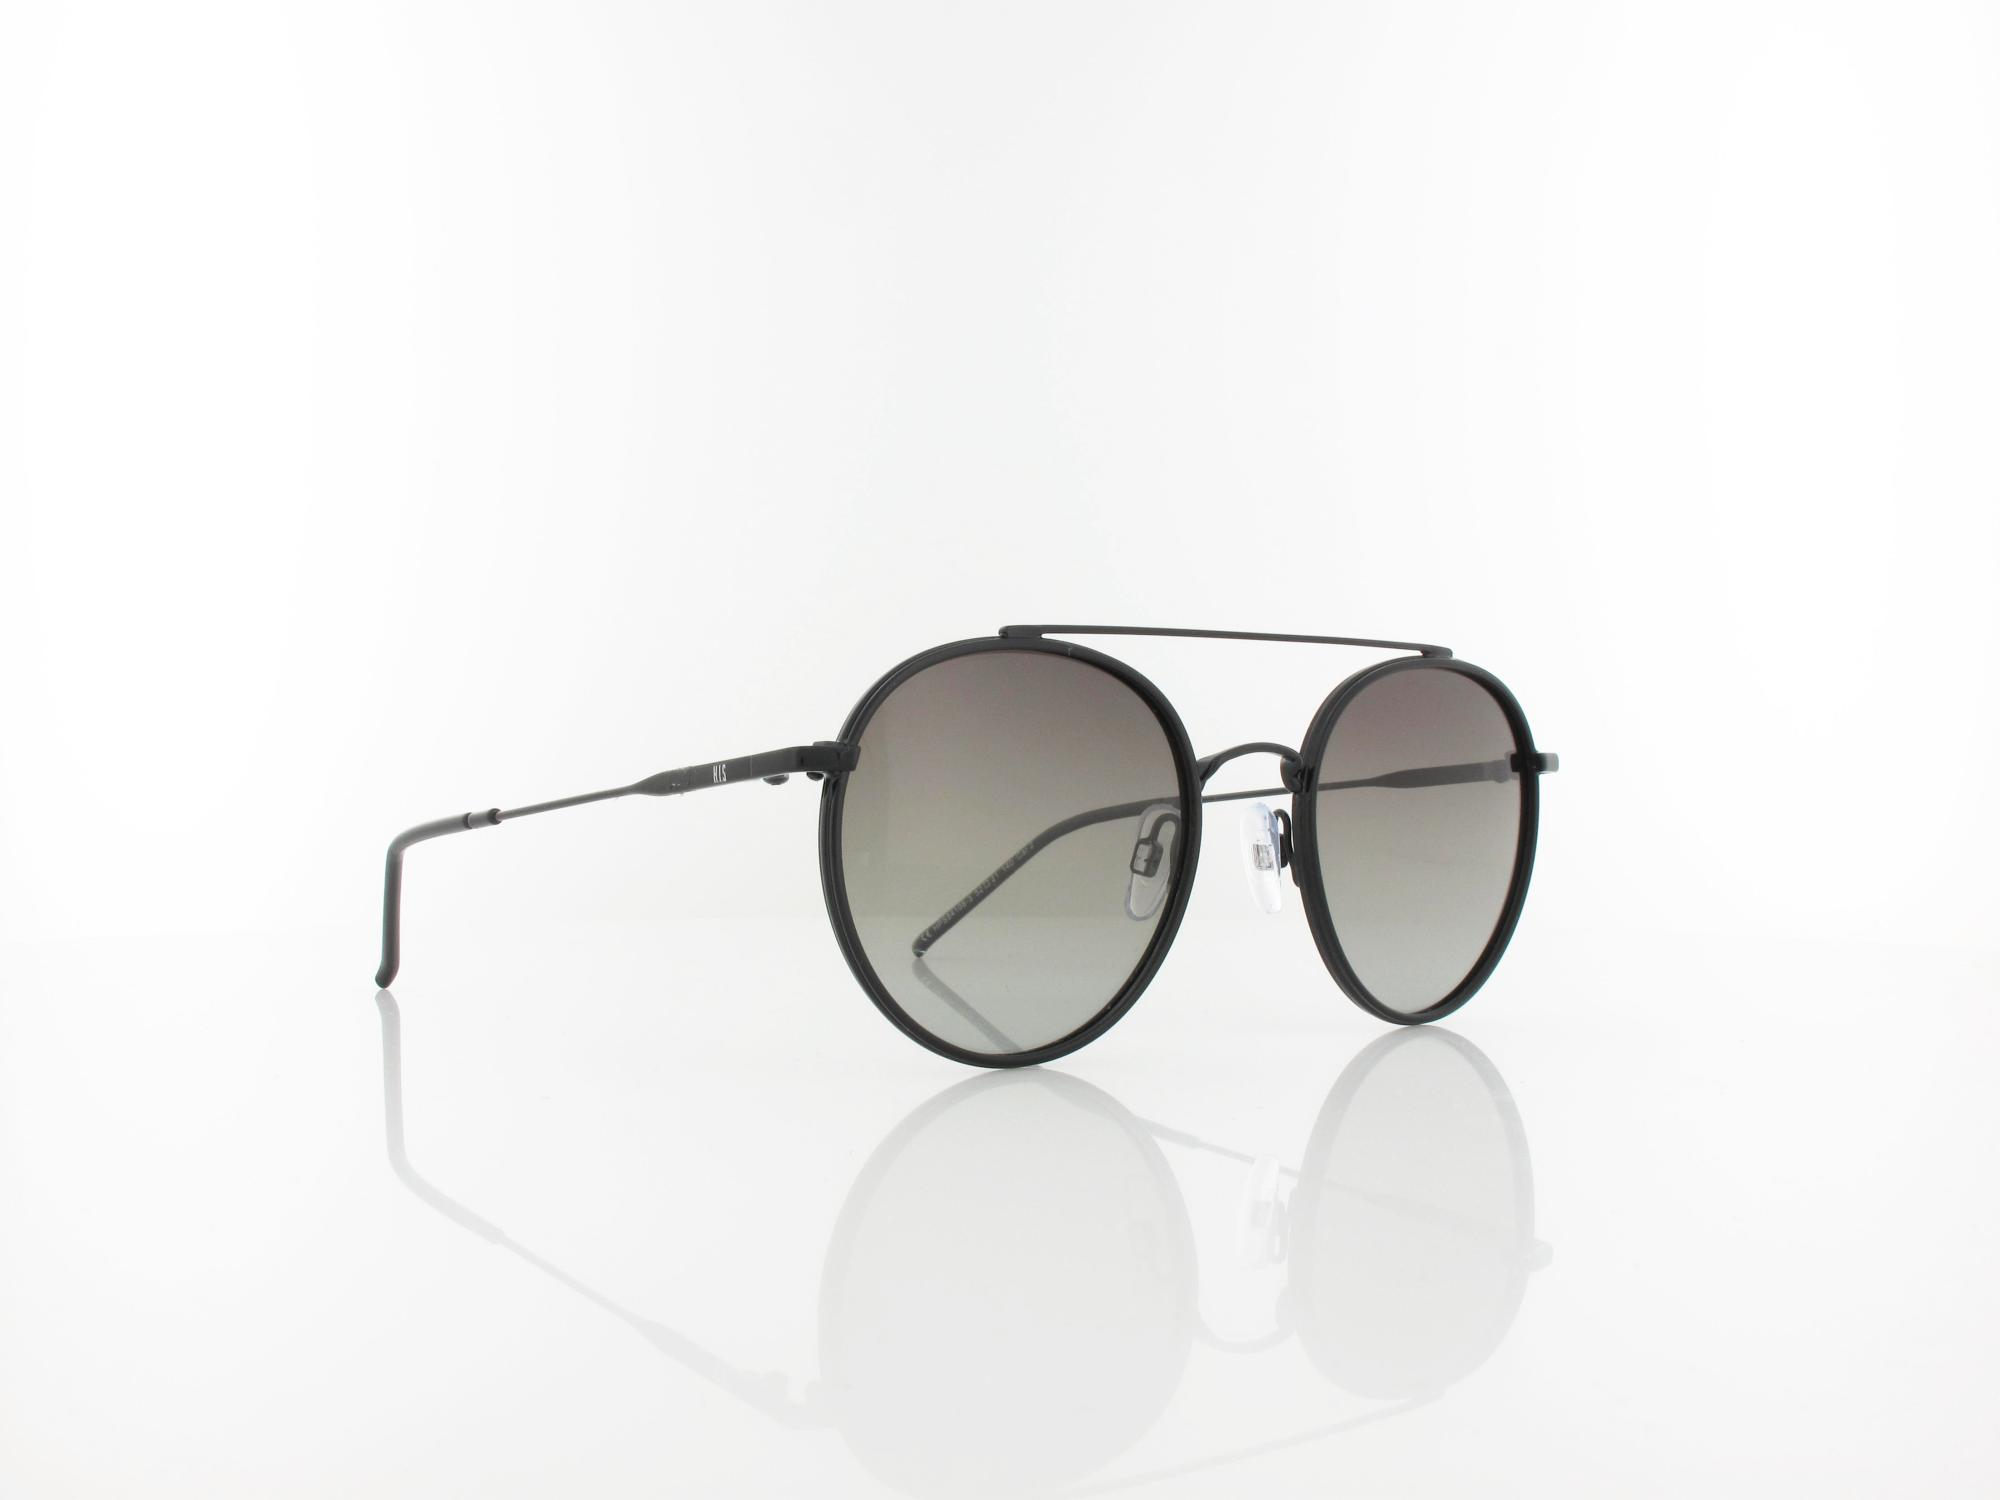 HIS polarized | HPS84108-3 52 | black / grey gradient polarized